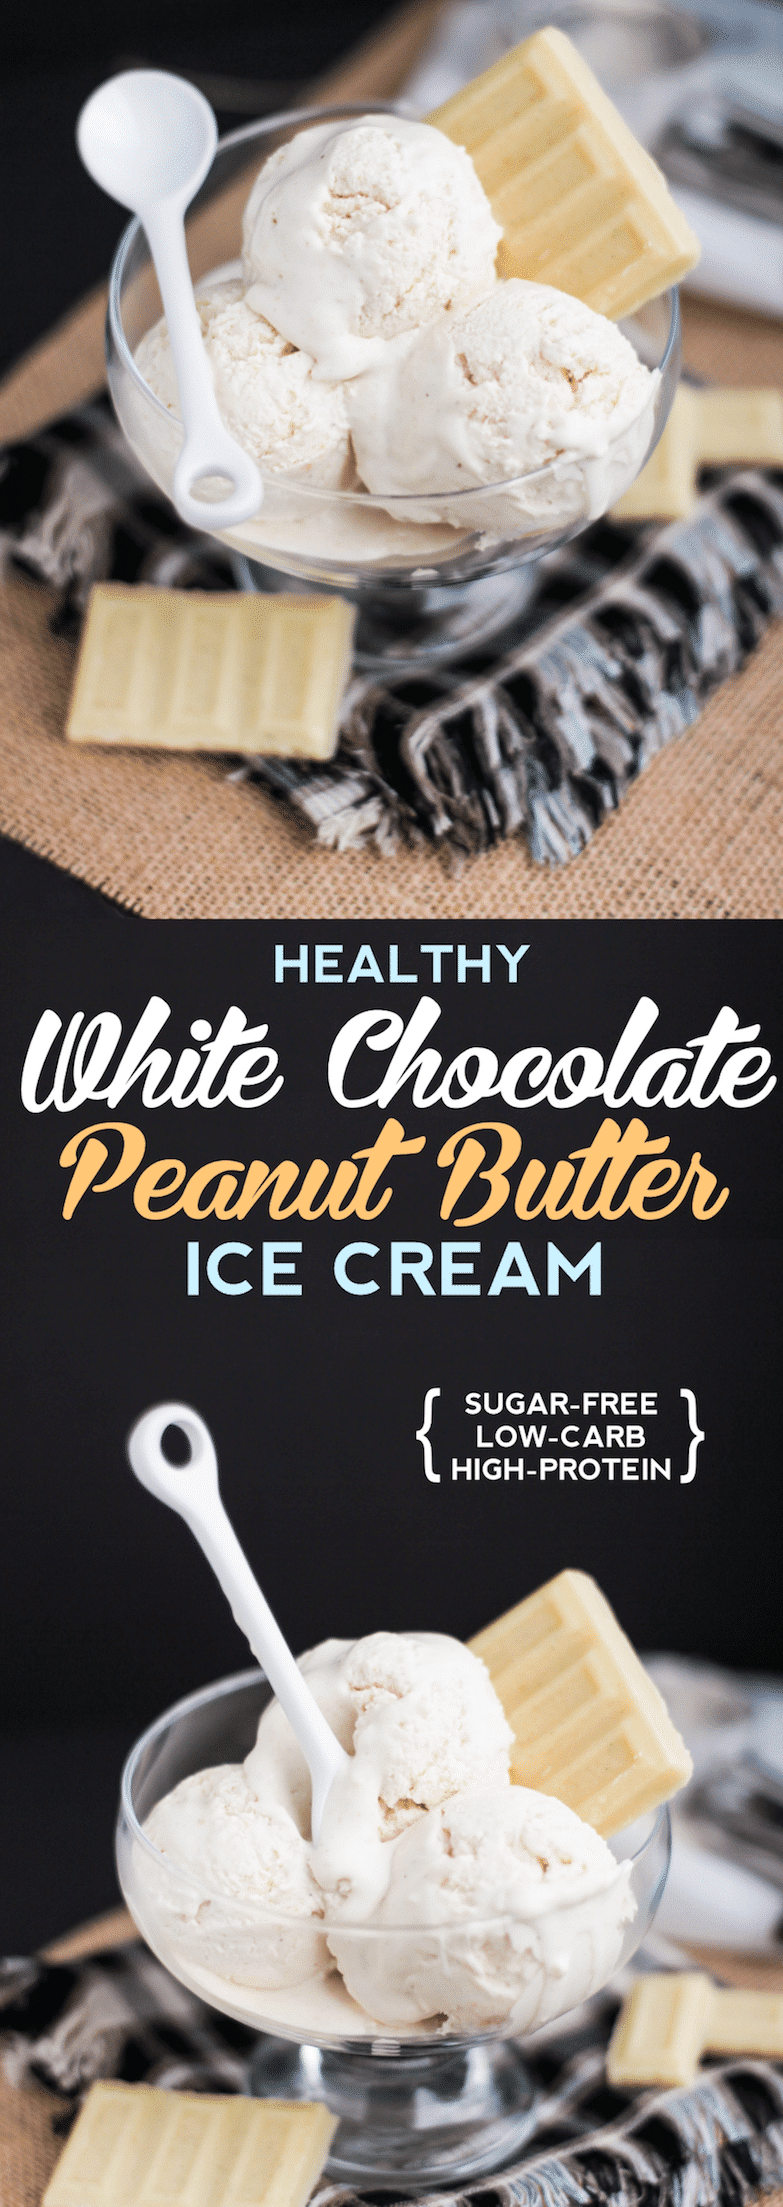 Healthy White Chocolate Peanut Butter Ice Cream recipe (sugar free, low carb, high protein) - Desserts with Benefits